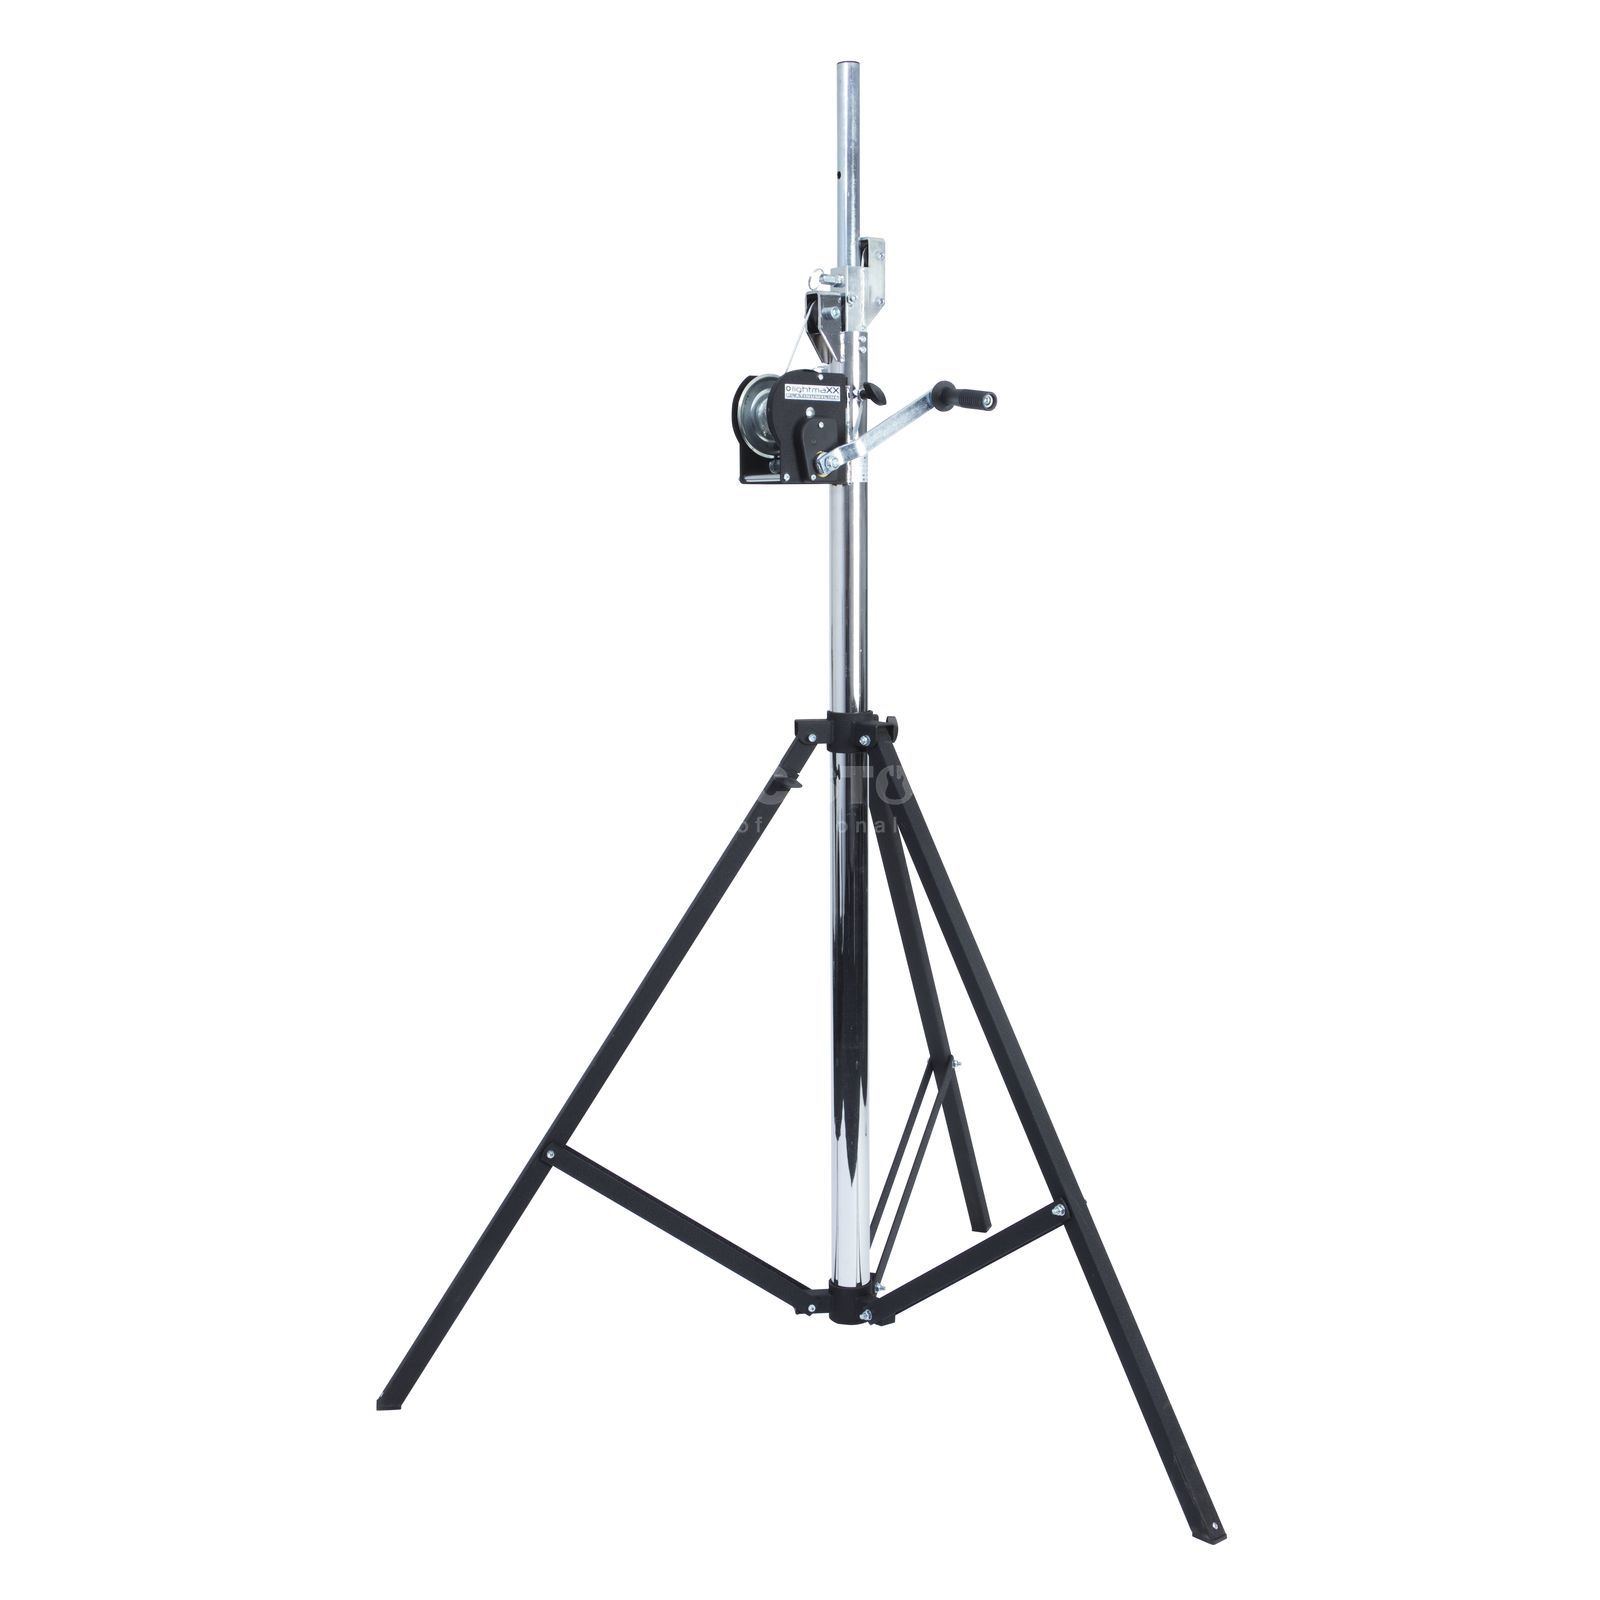 lightmaXX LS-4000 PRO WIND-UP STAND 4m, TV-spigot, TÜV/GS, 85kg Product Image